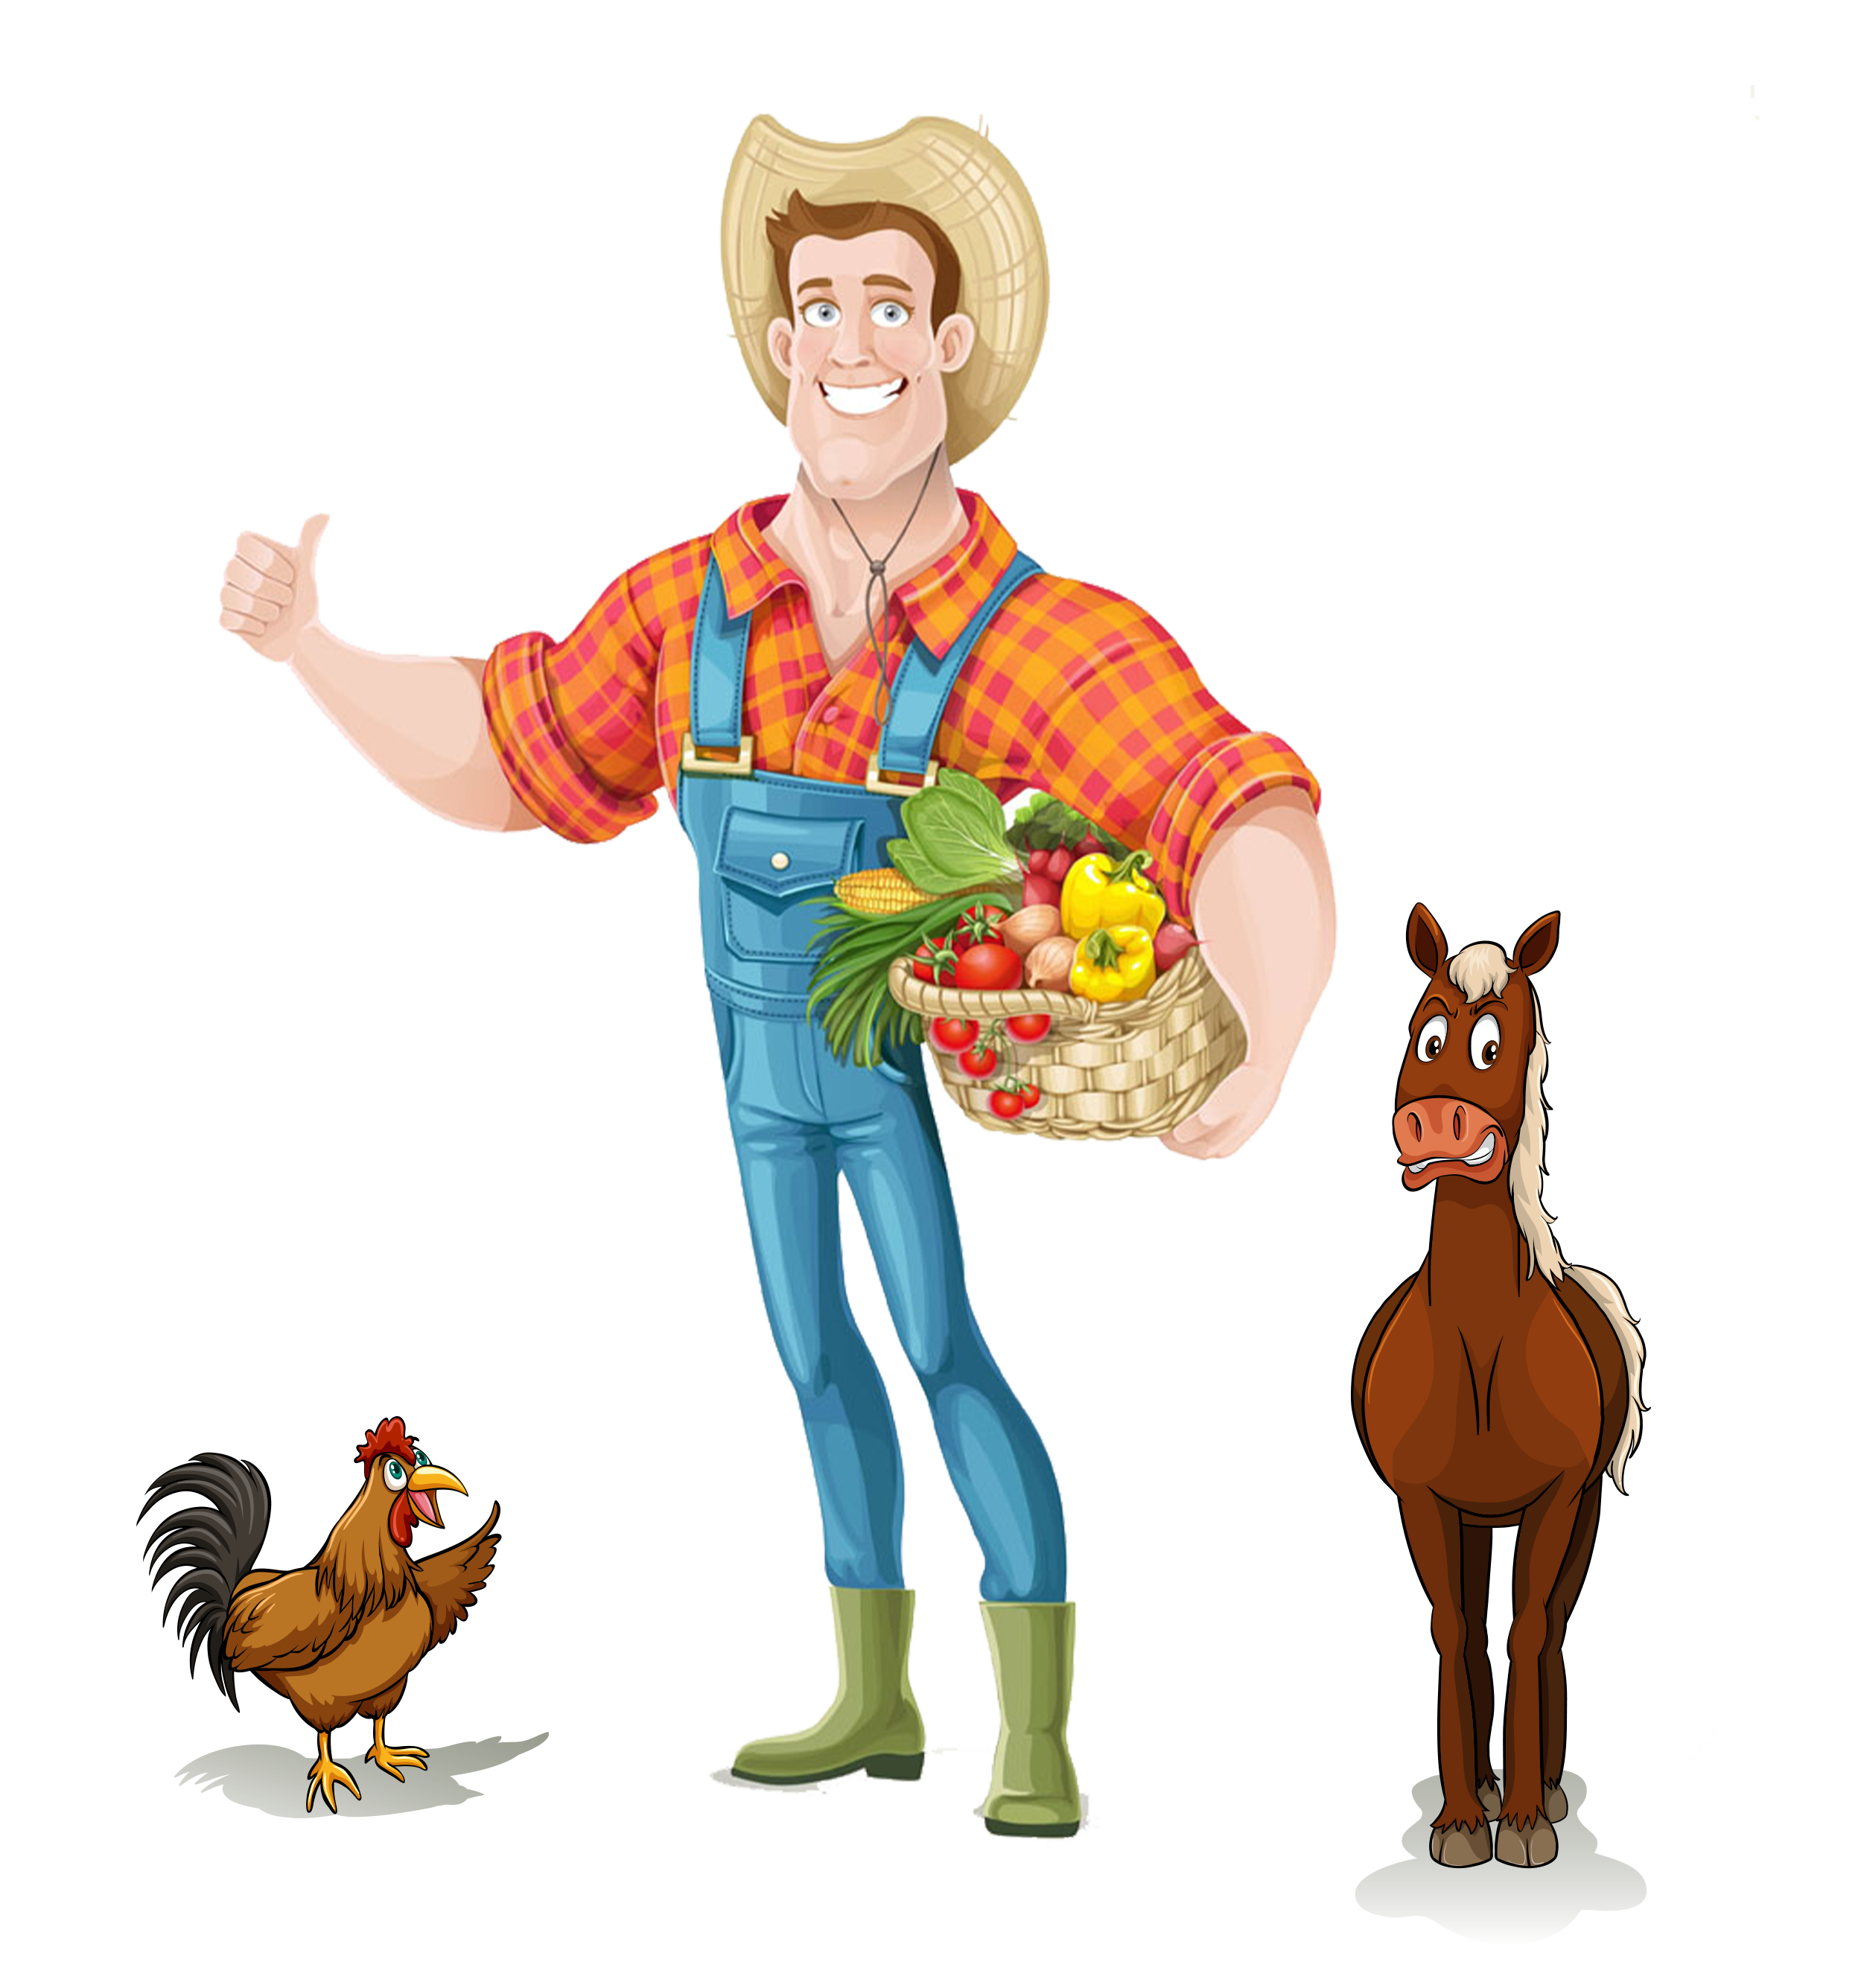 Png farmer. Agriculture icon cartoon transprent